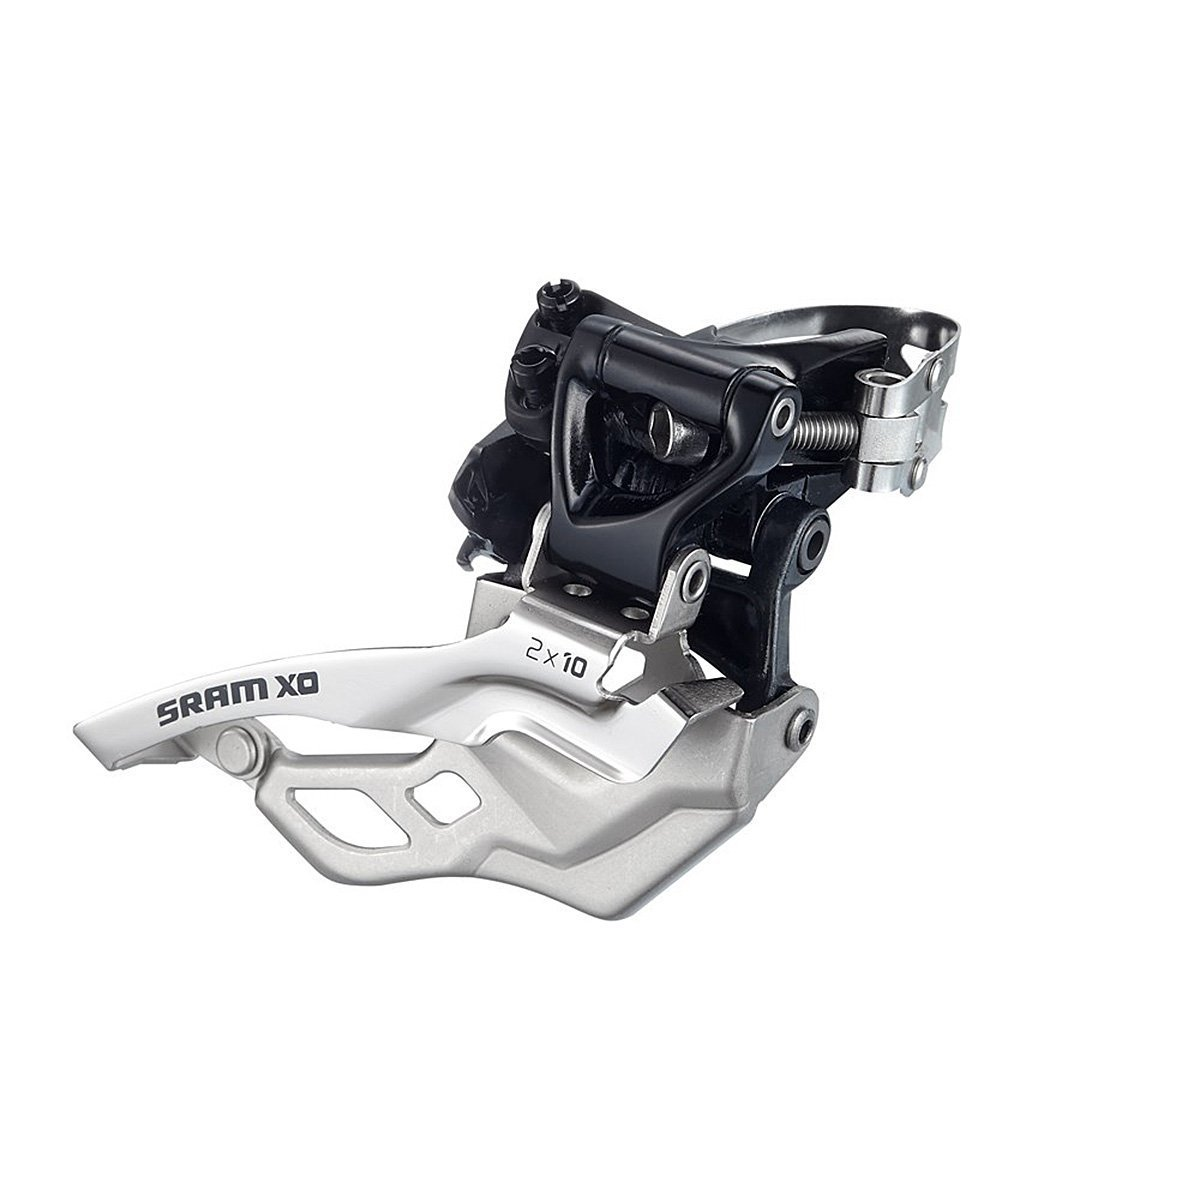 SRAM X0 Bicycle Front Derailleur with 3 x 10 High-Clamp 318 Compact Bottom Pull [並行輸入品] B075JZSLZQ